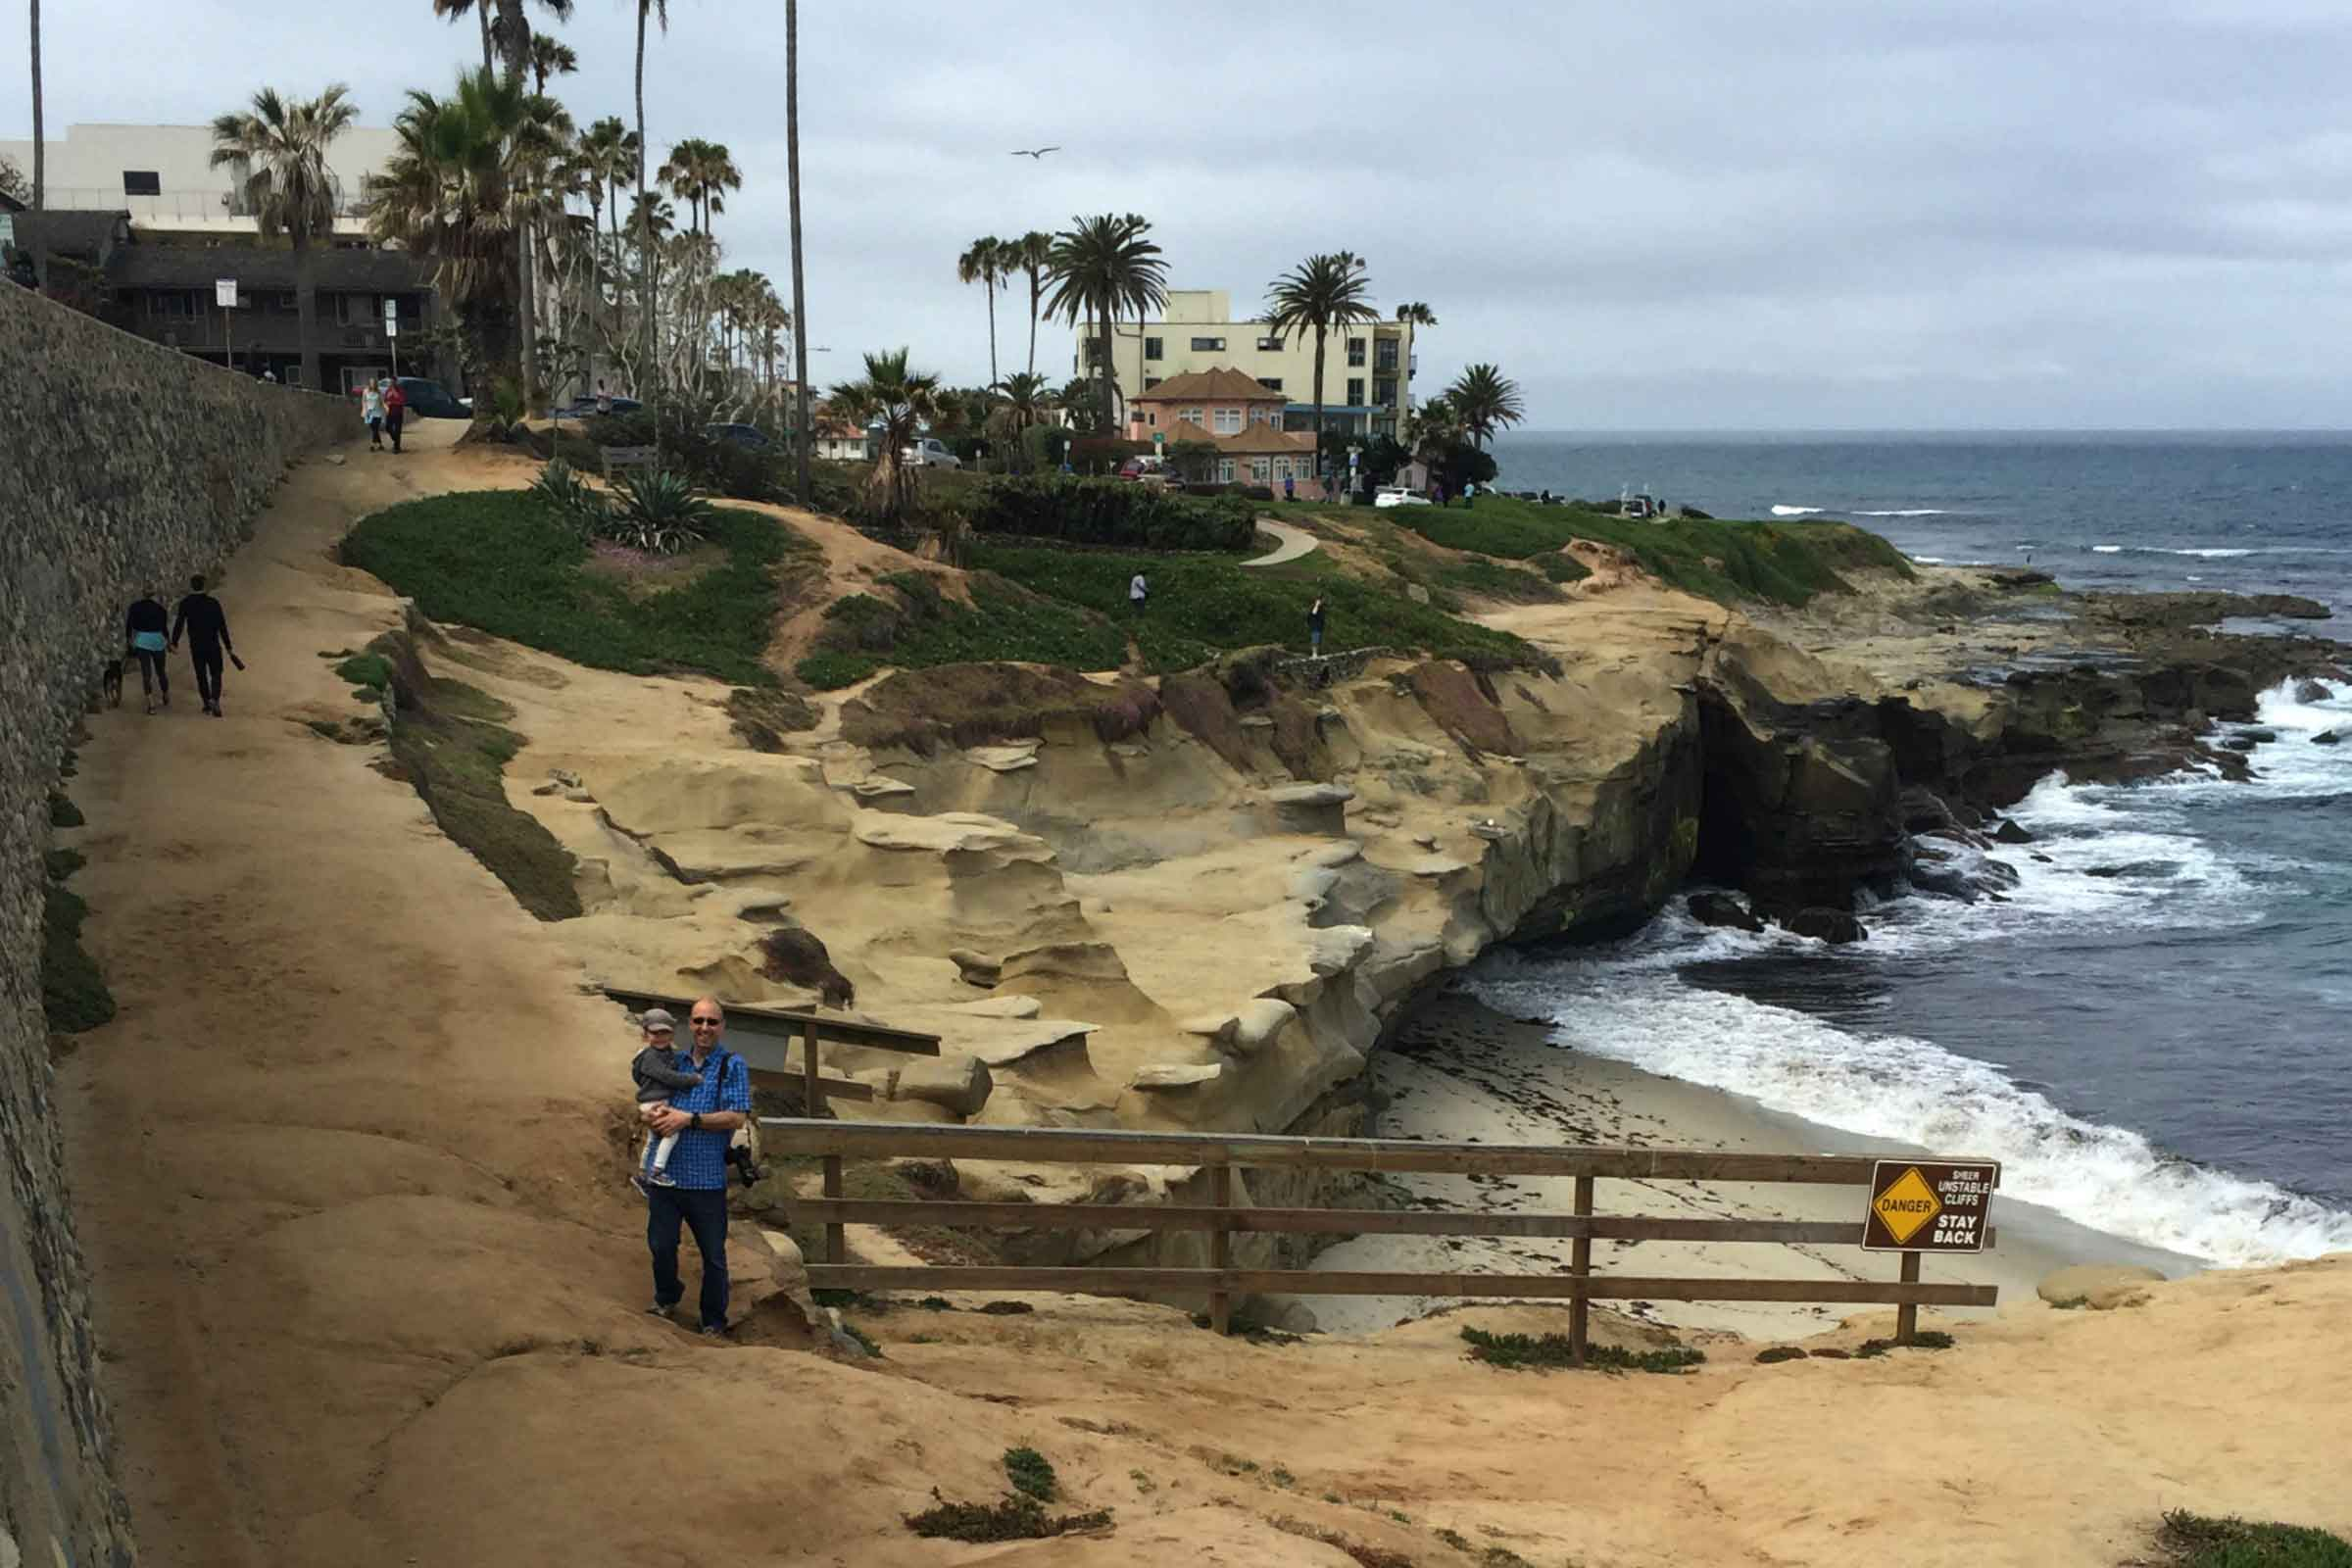 Baby-Can-Travel---San-Diego-Family-Friendly-Walks---La-Jolla-Cove